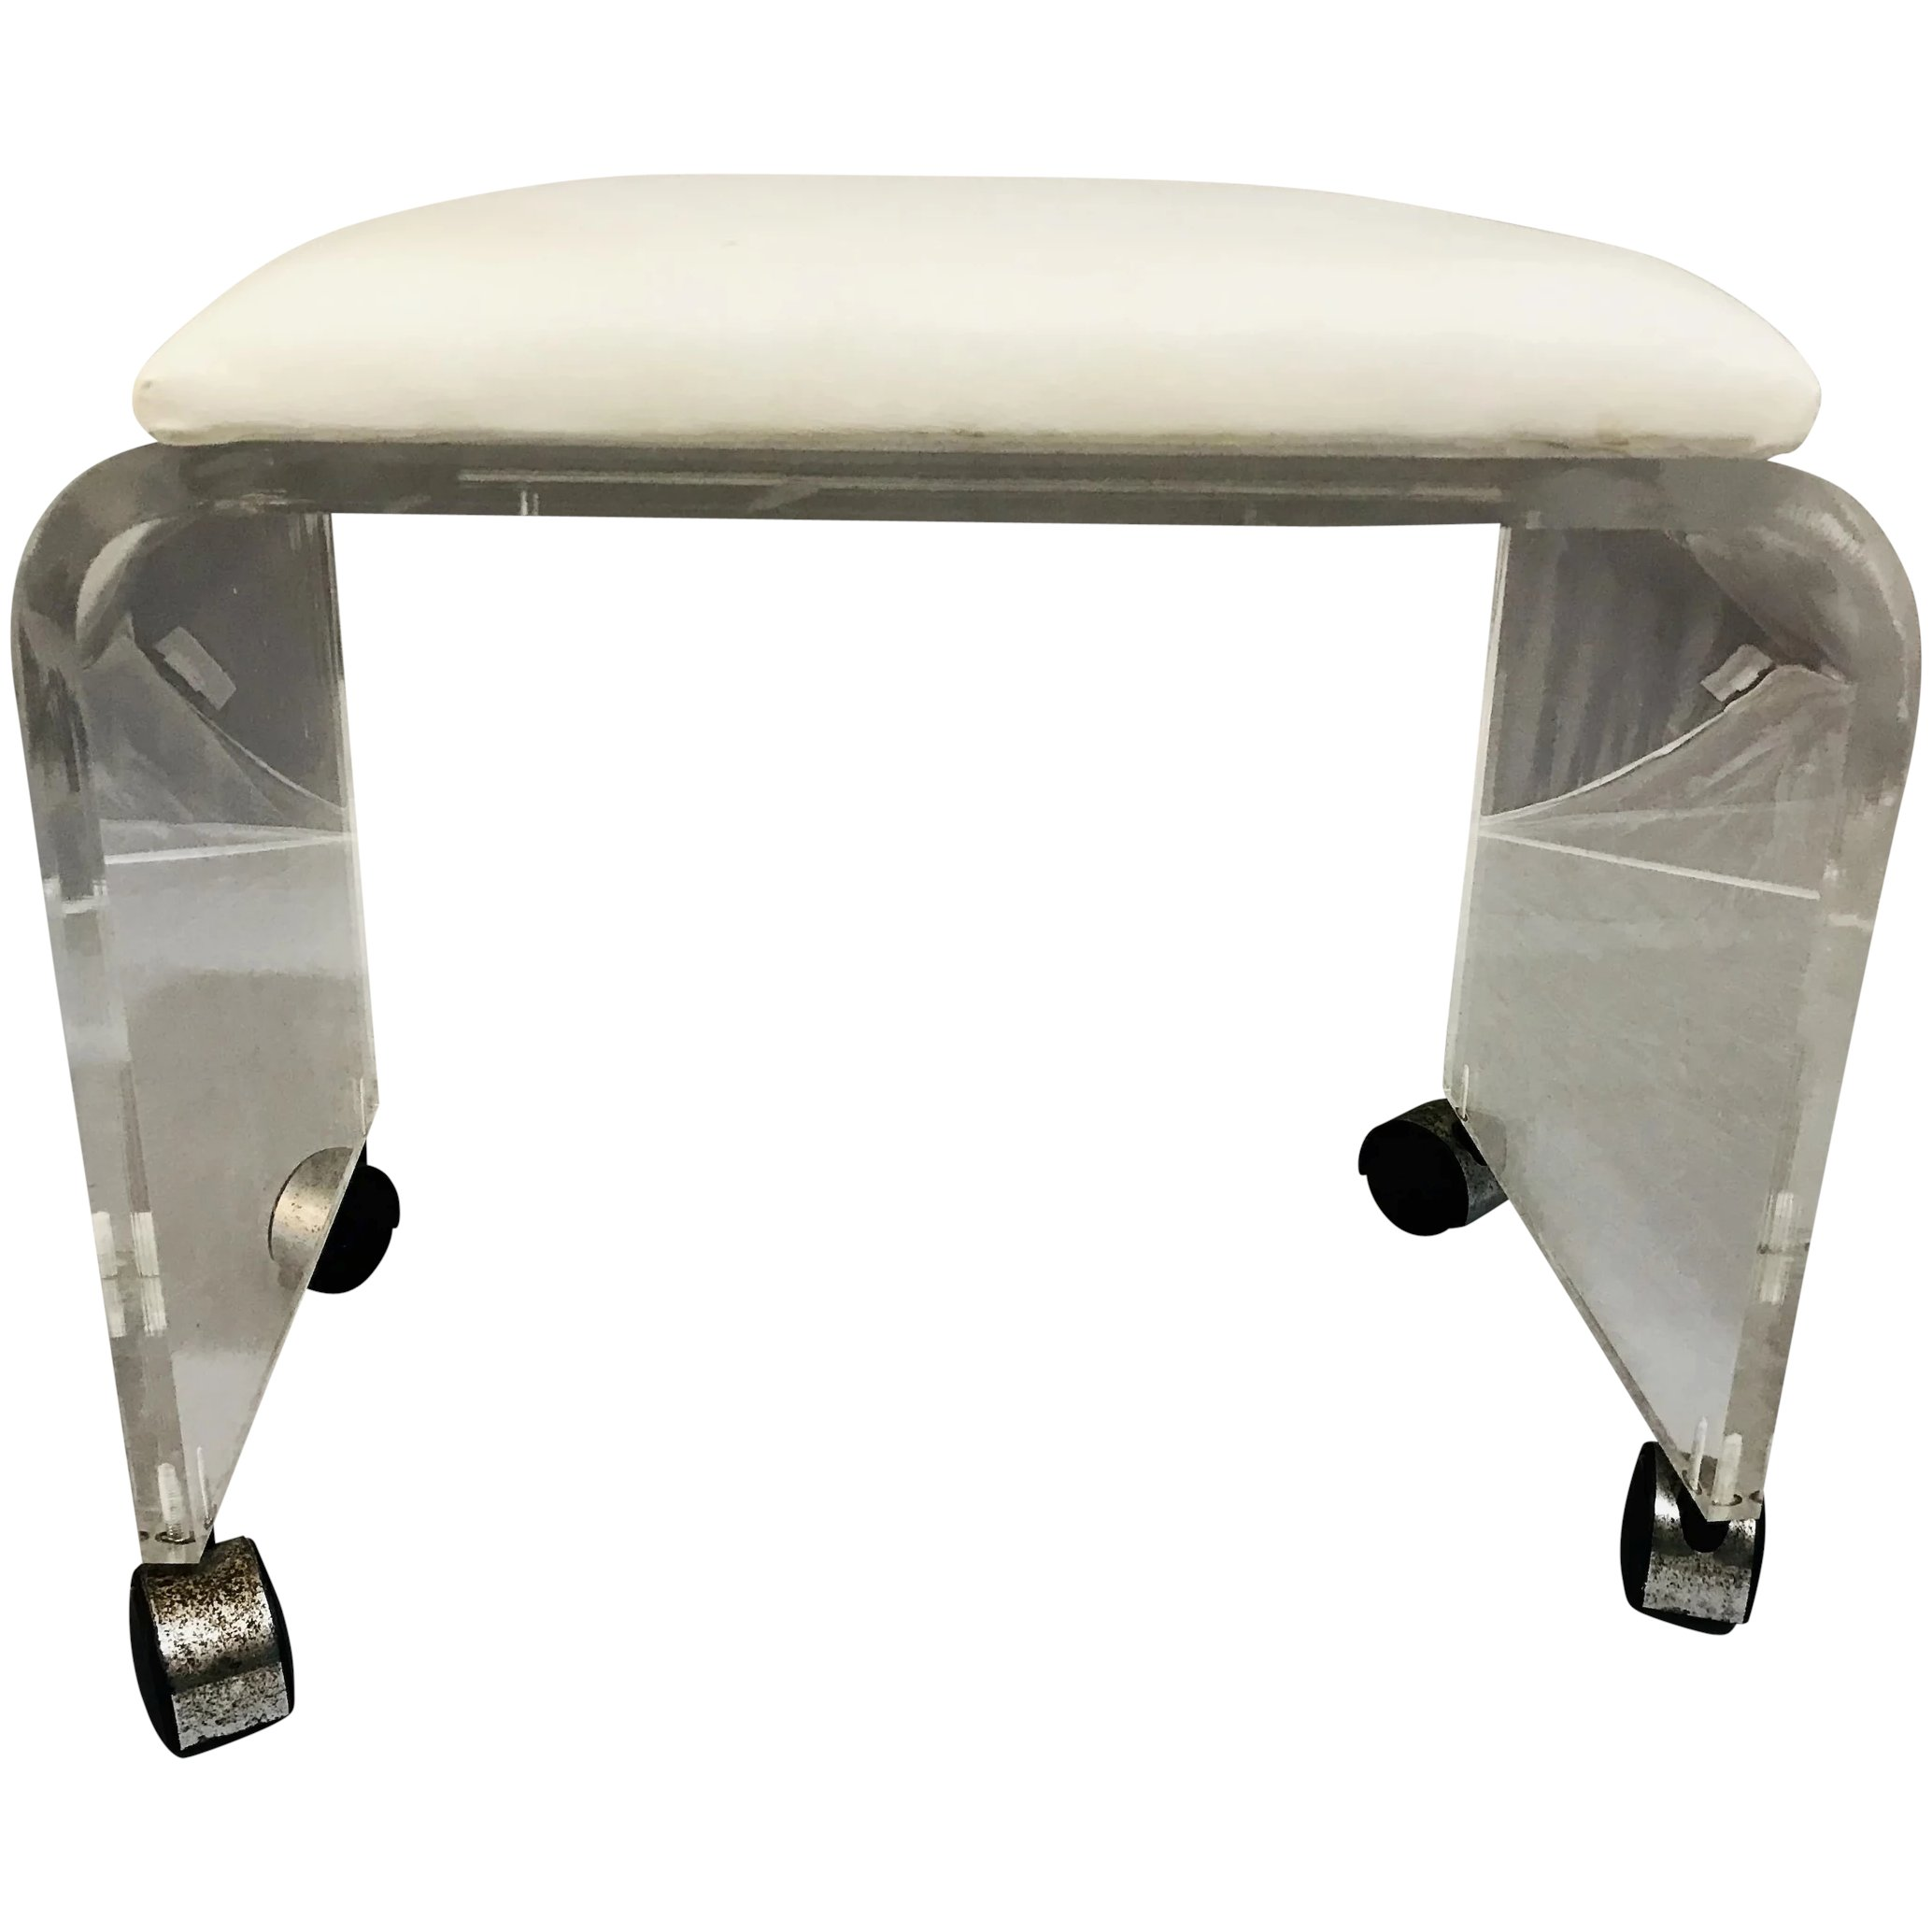 Sensational Vintage Lucite Vanity Stool Bench Caraccident5 Cool Chair Designs And Ideas Caraccident5Info